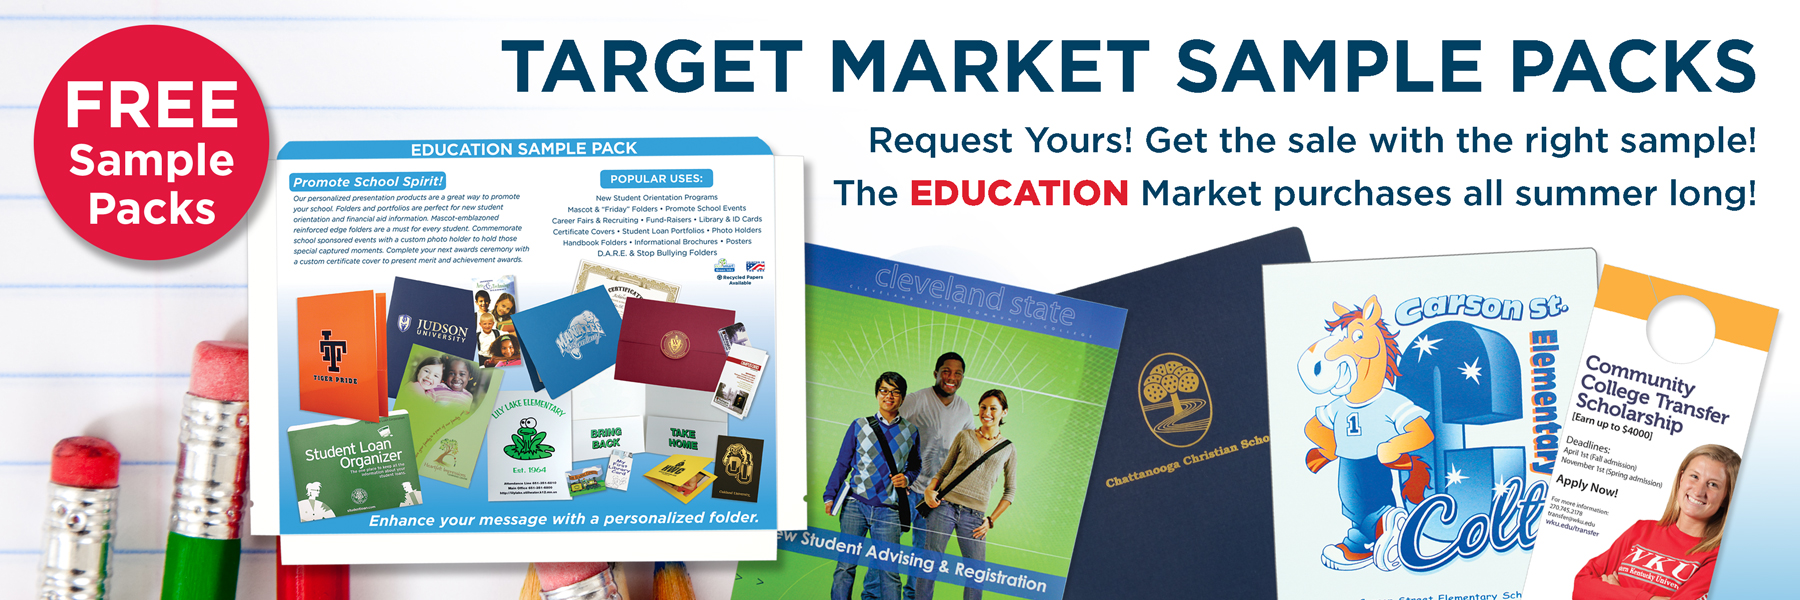 Target Market Sample Packs